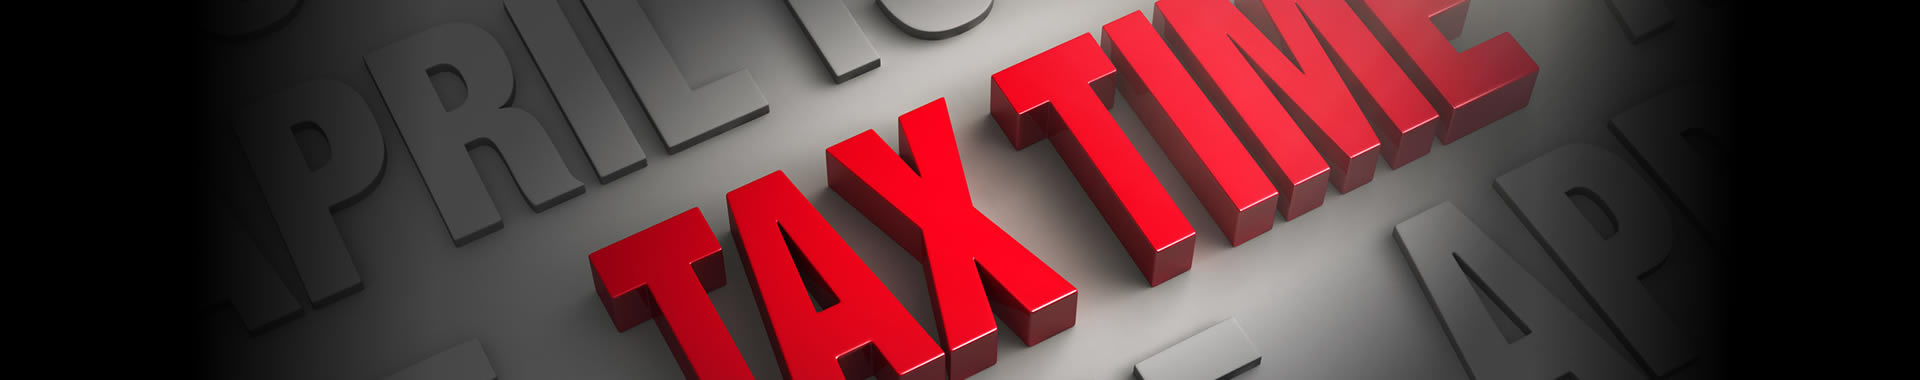 """An image with the words """"Tax time"""" depicts the concept of a tax calendar."""